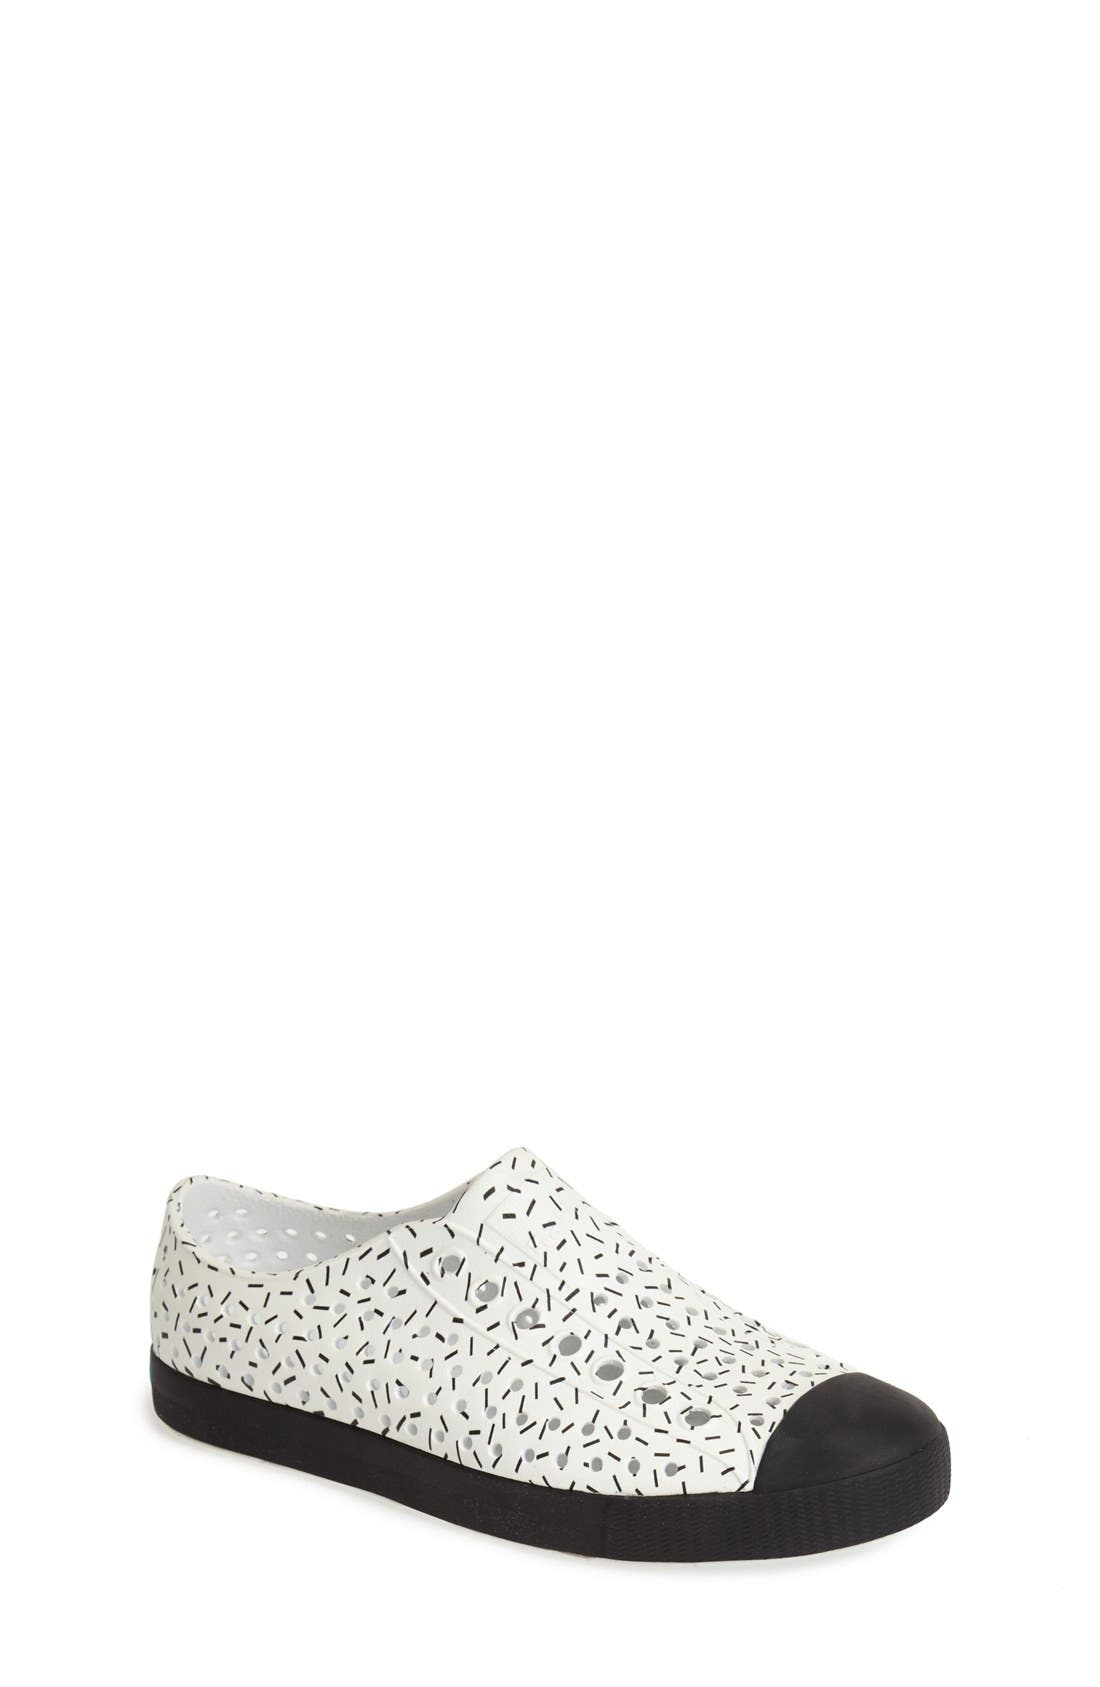 'Jefferson' Printed Slip-On Sneaker,                             Main thumbnail 3, color,